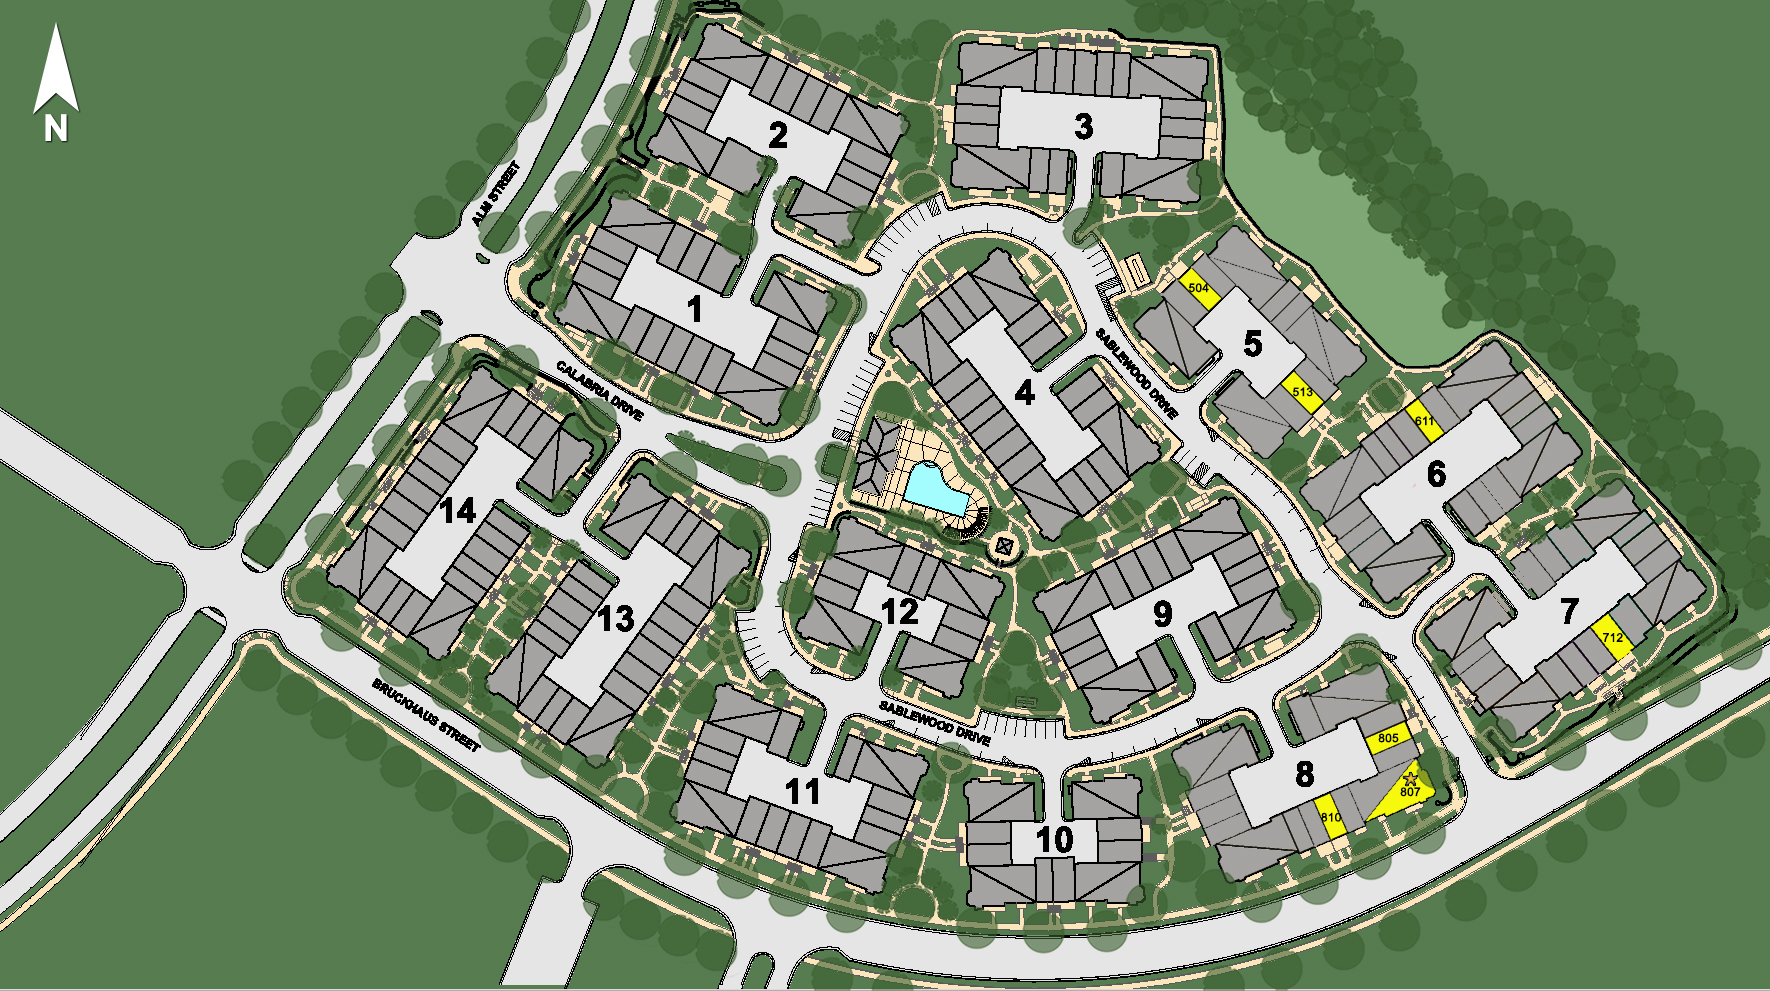 The Cottages at Brier Creek Site Plan